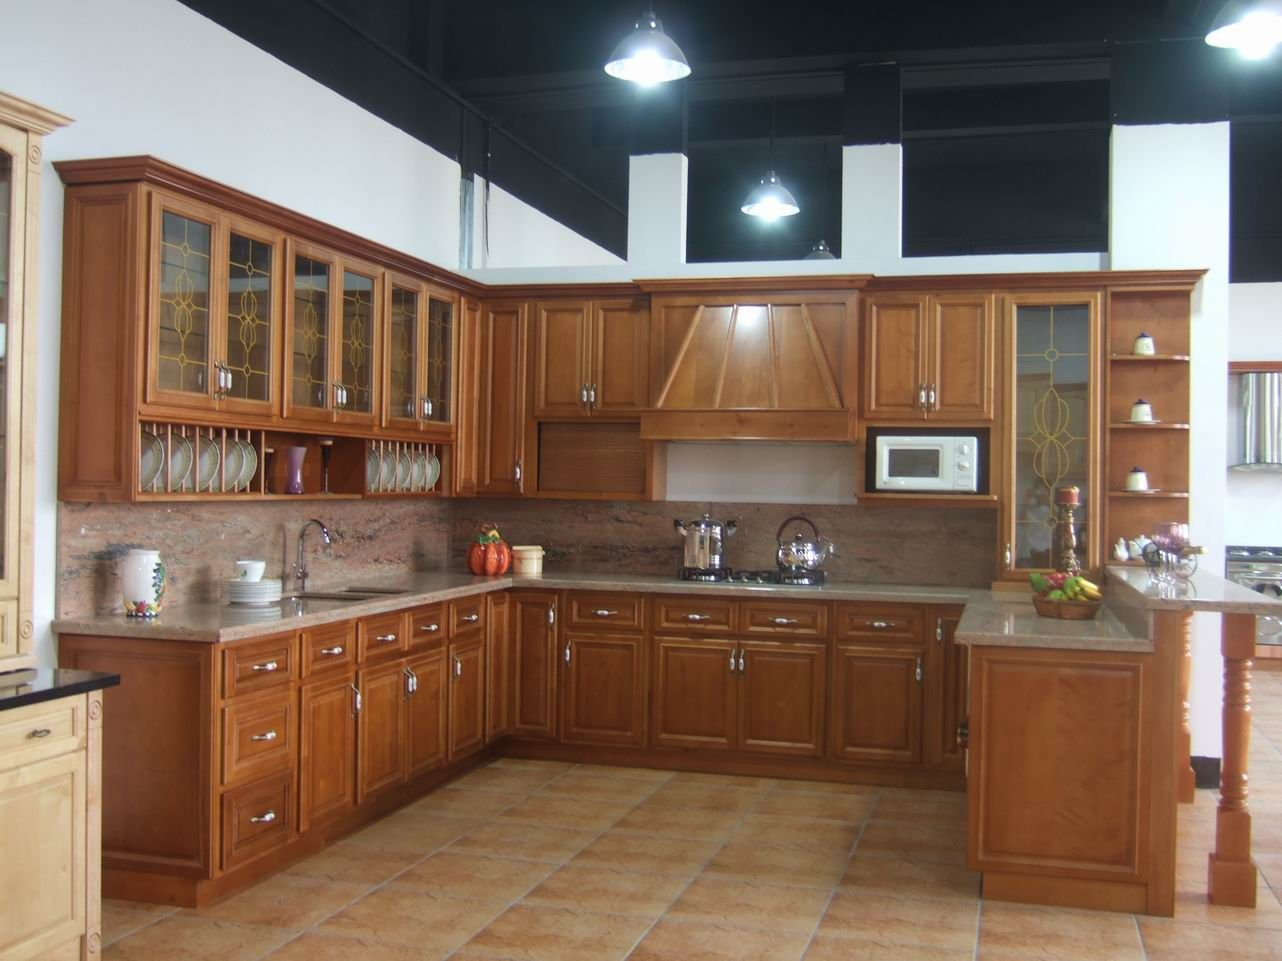 Solid American Cherry Wood Kitchen Cabinets Kitchen Furniture Design Wooden Kitchen Furniture Design Your Kitchen